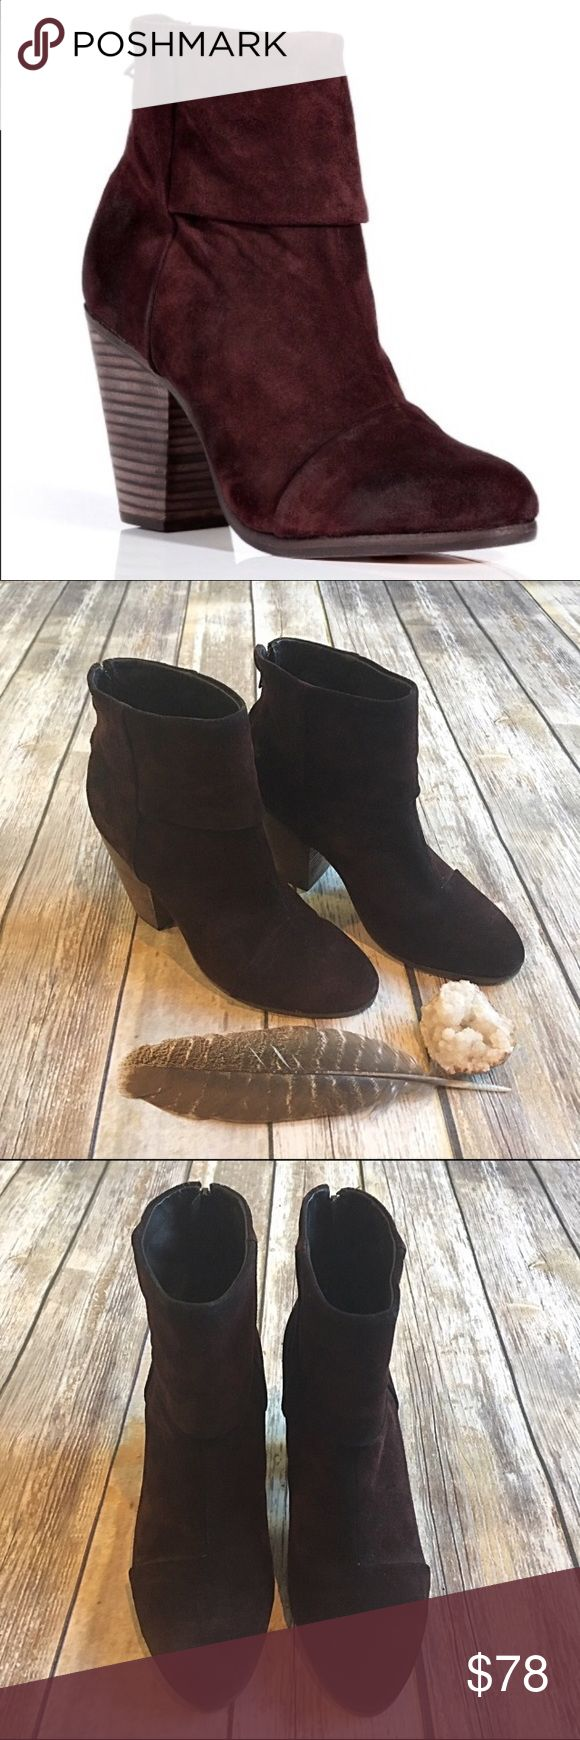 Rag & Bone Newbury 11 Burgundy suede ankle booties Rag & Bone Newbury 41 or 11 burgundy ankle boots. Rich dark burgundy suede ankle boots. Beautiful!!! Boots show signs of wear on sole, but look great and hardly used on the top. Originally $495!!! rag & bone Shoes Ankle Boots & Booties